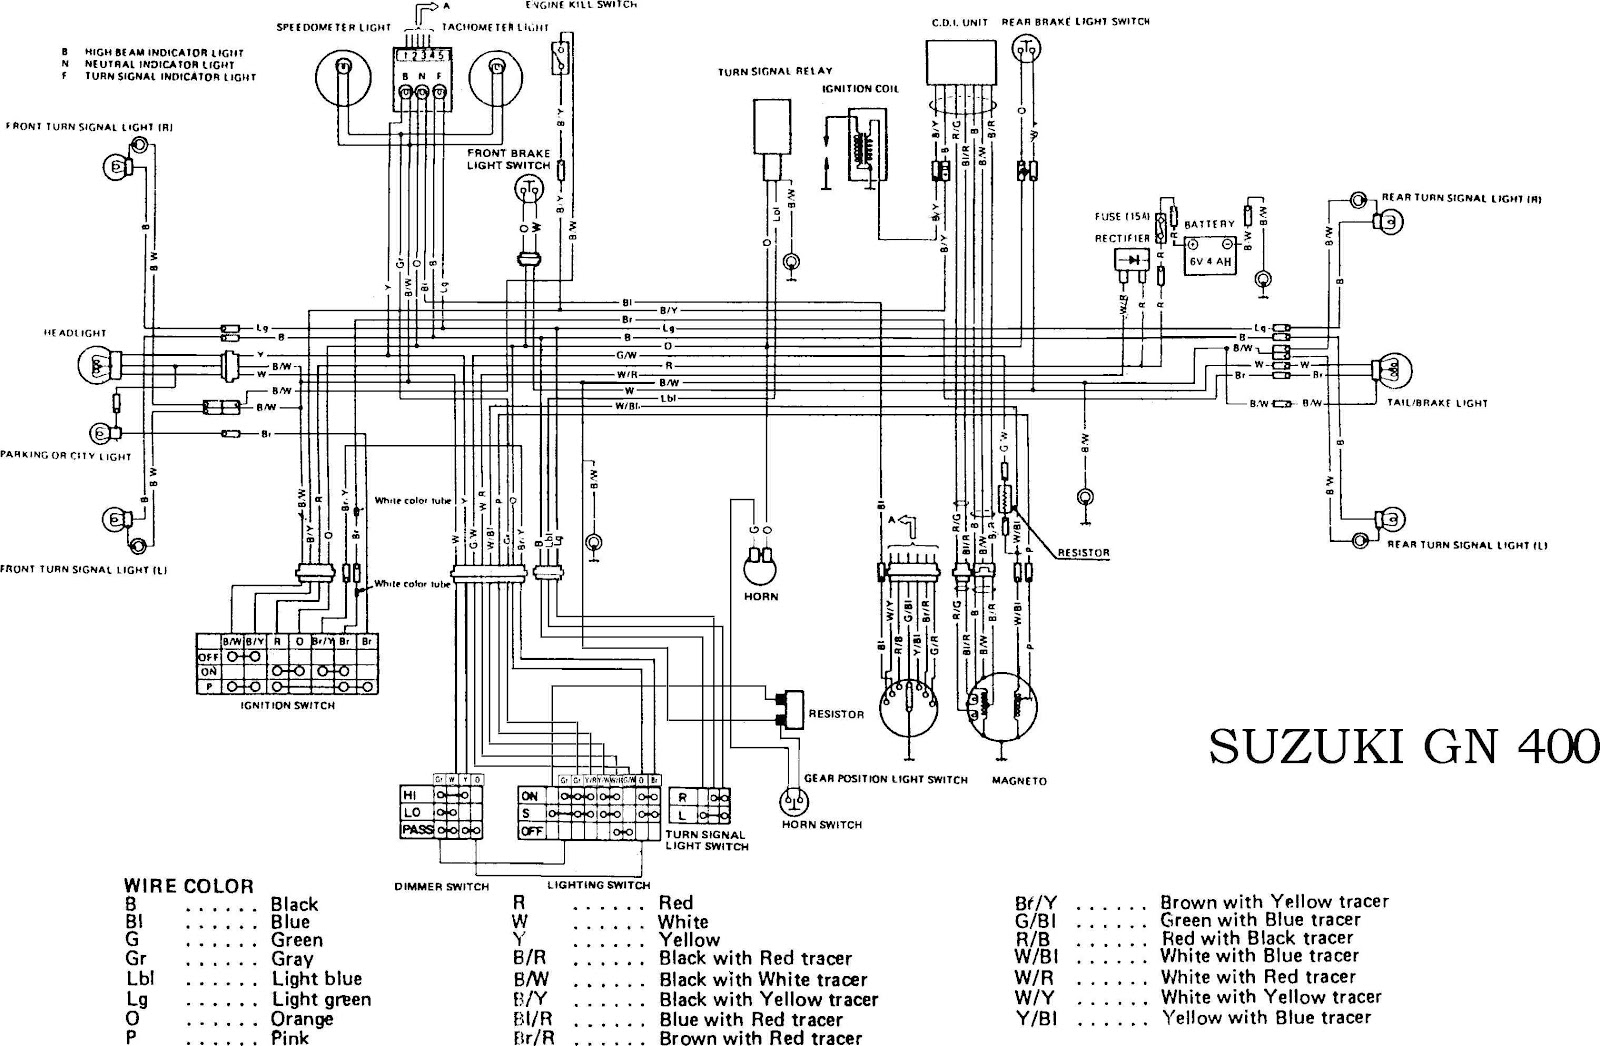 Wiring Diagram Social moreover Motorcycle Stator Diagram furthermore Equipos De Motor 2 furthermore 58rf1 Keeps Blowing Acc Fuse When Going Down Road Sitting in addition T Head engine. on harley davidson motorcycle wiring diagrams